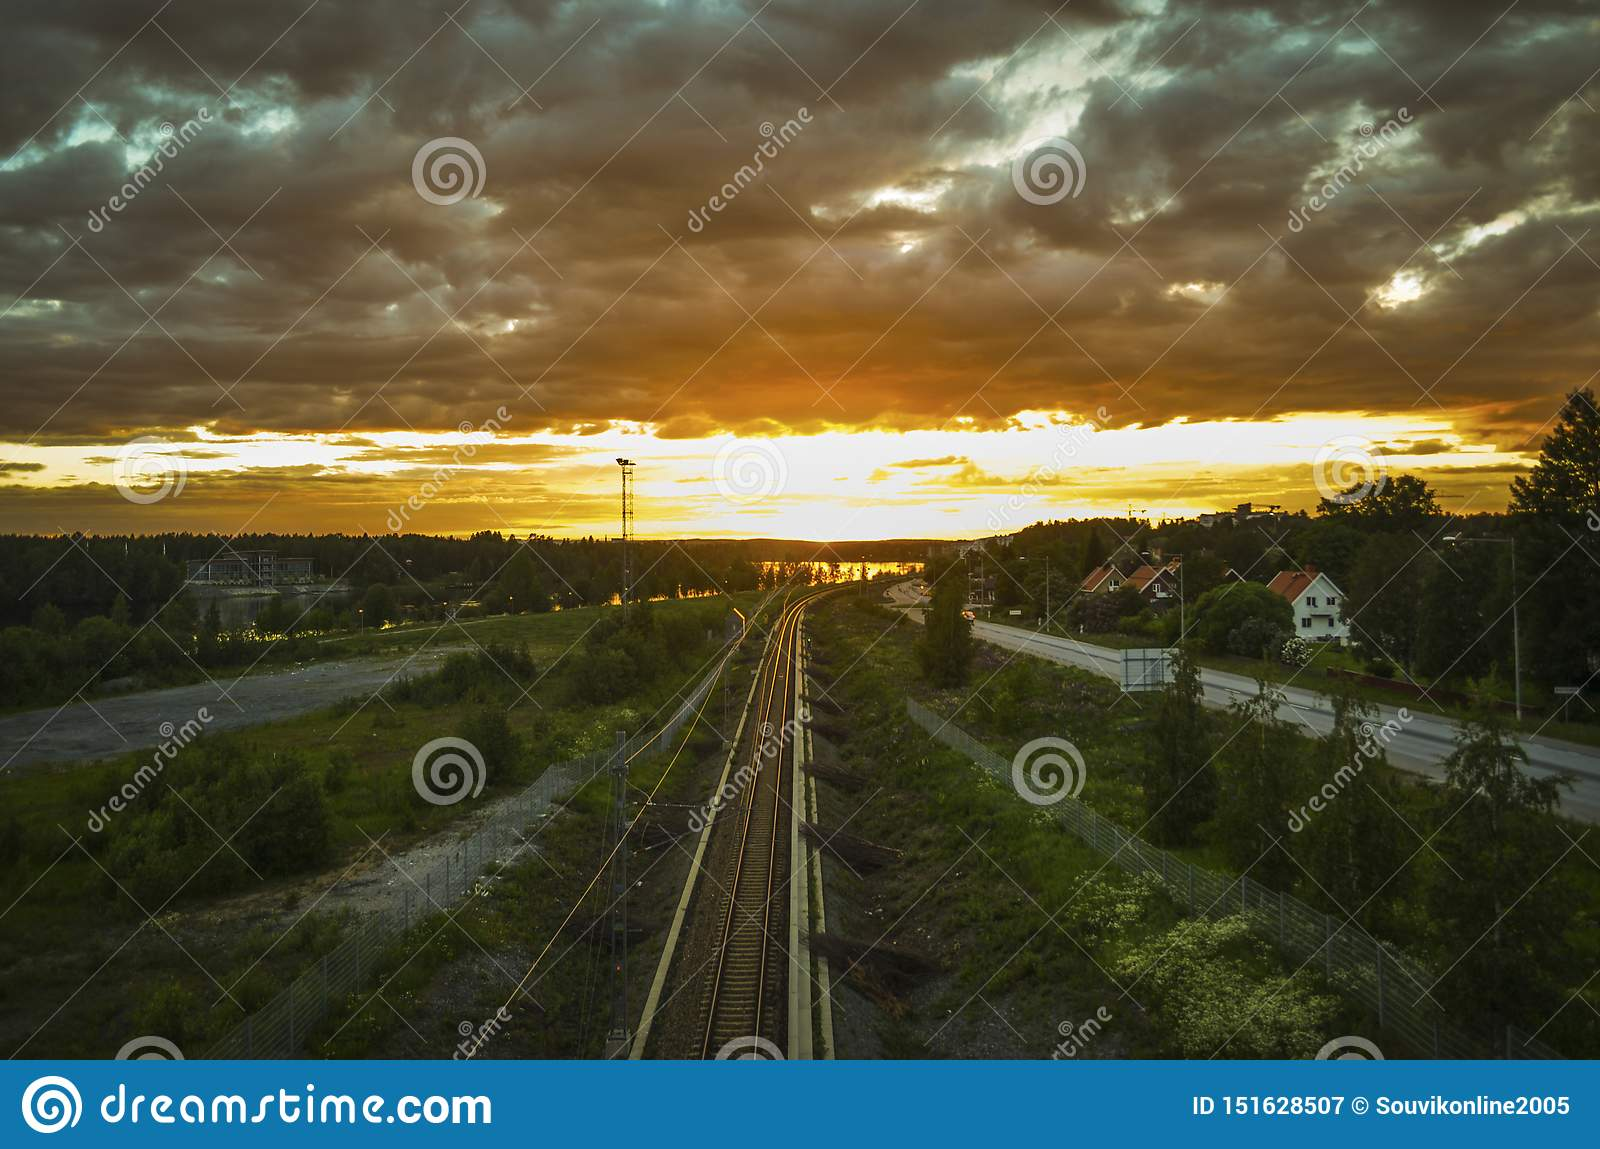 Stunning reflection of sunlight on moving cloud and leading train line to the orange horizon in beatiful summer day in a cityscape